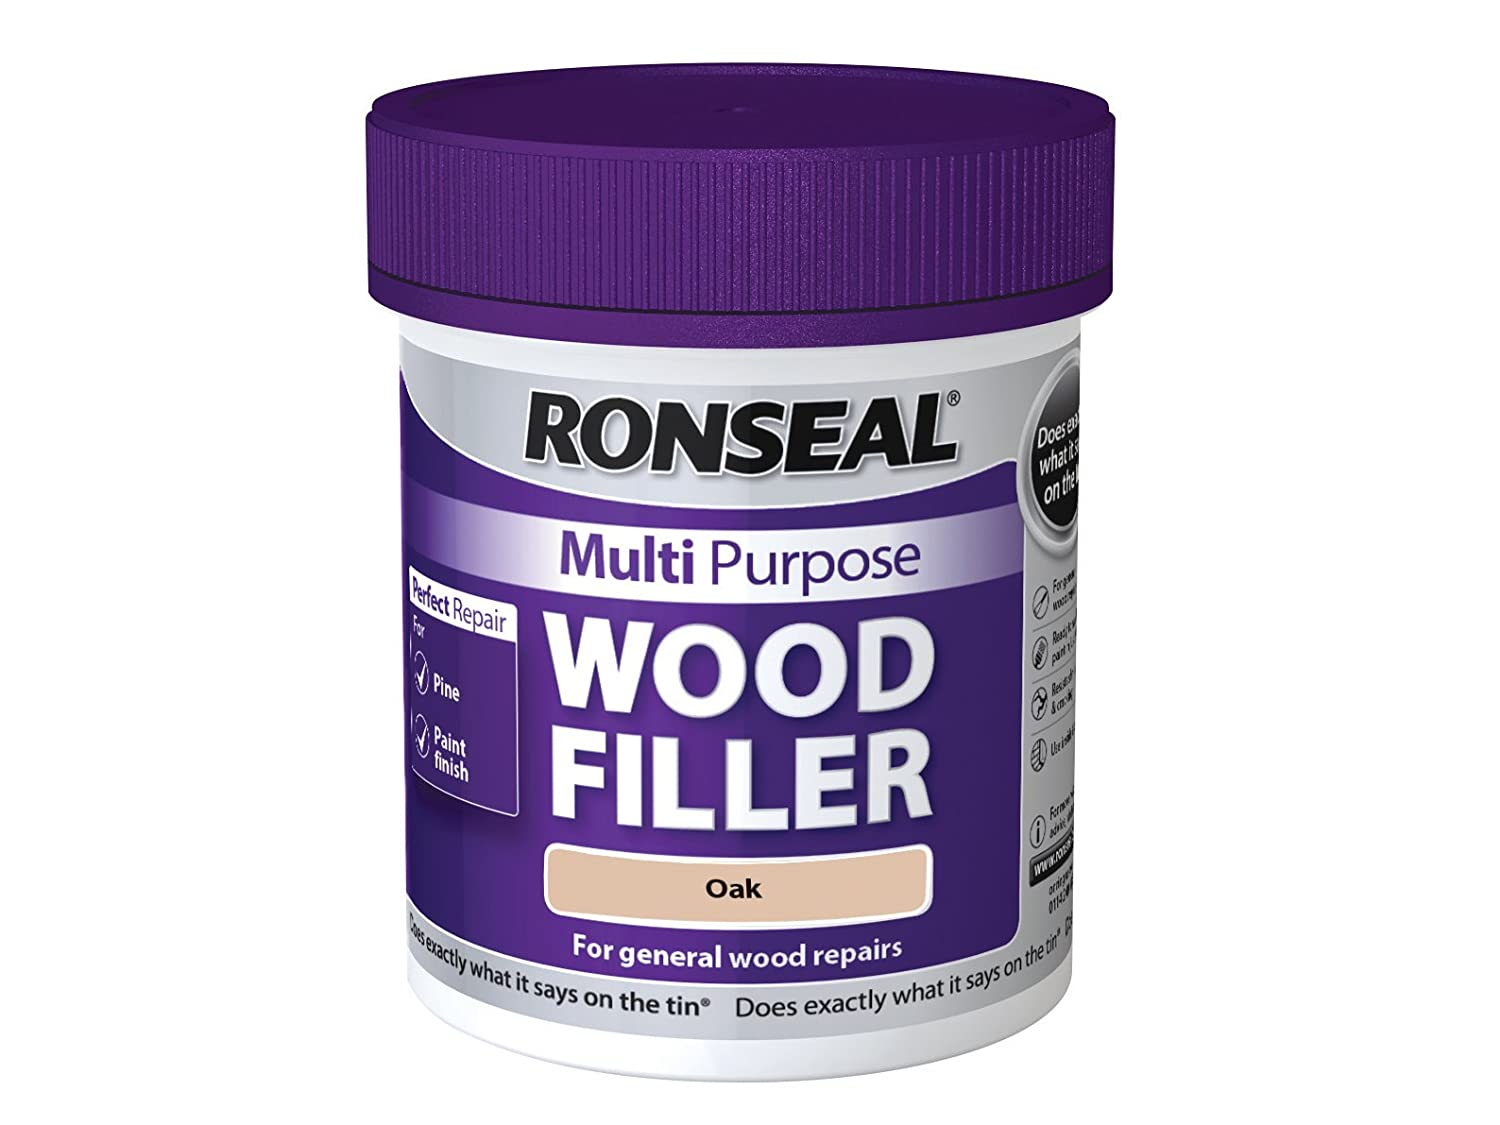 Ronseal MPWFL465 465 g Multi-Purpose Wood Filler Tub - Light